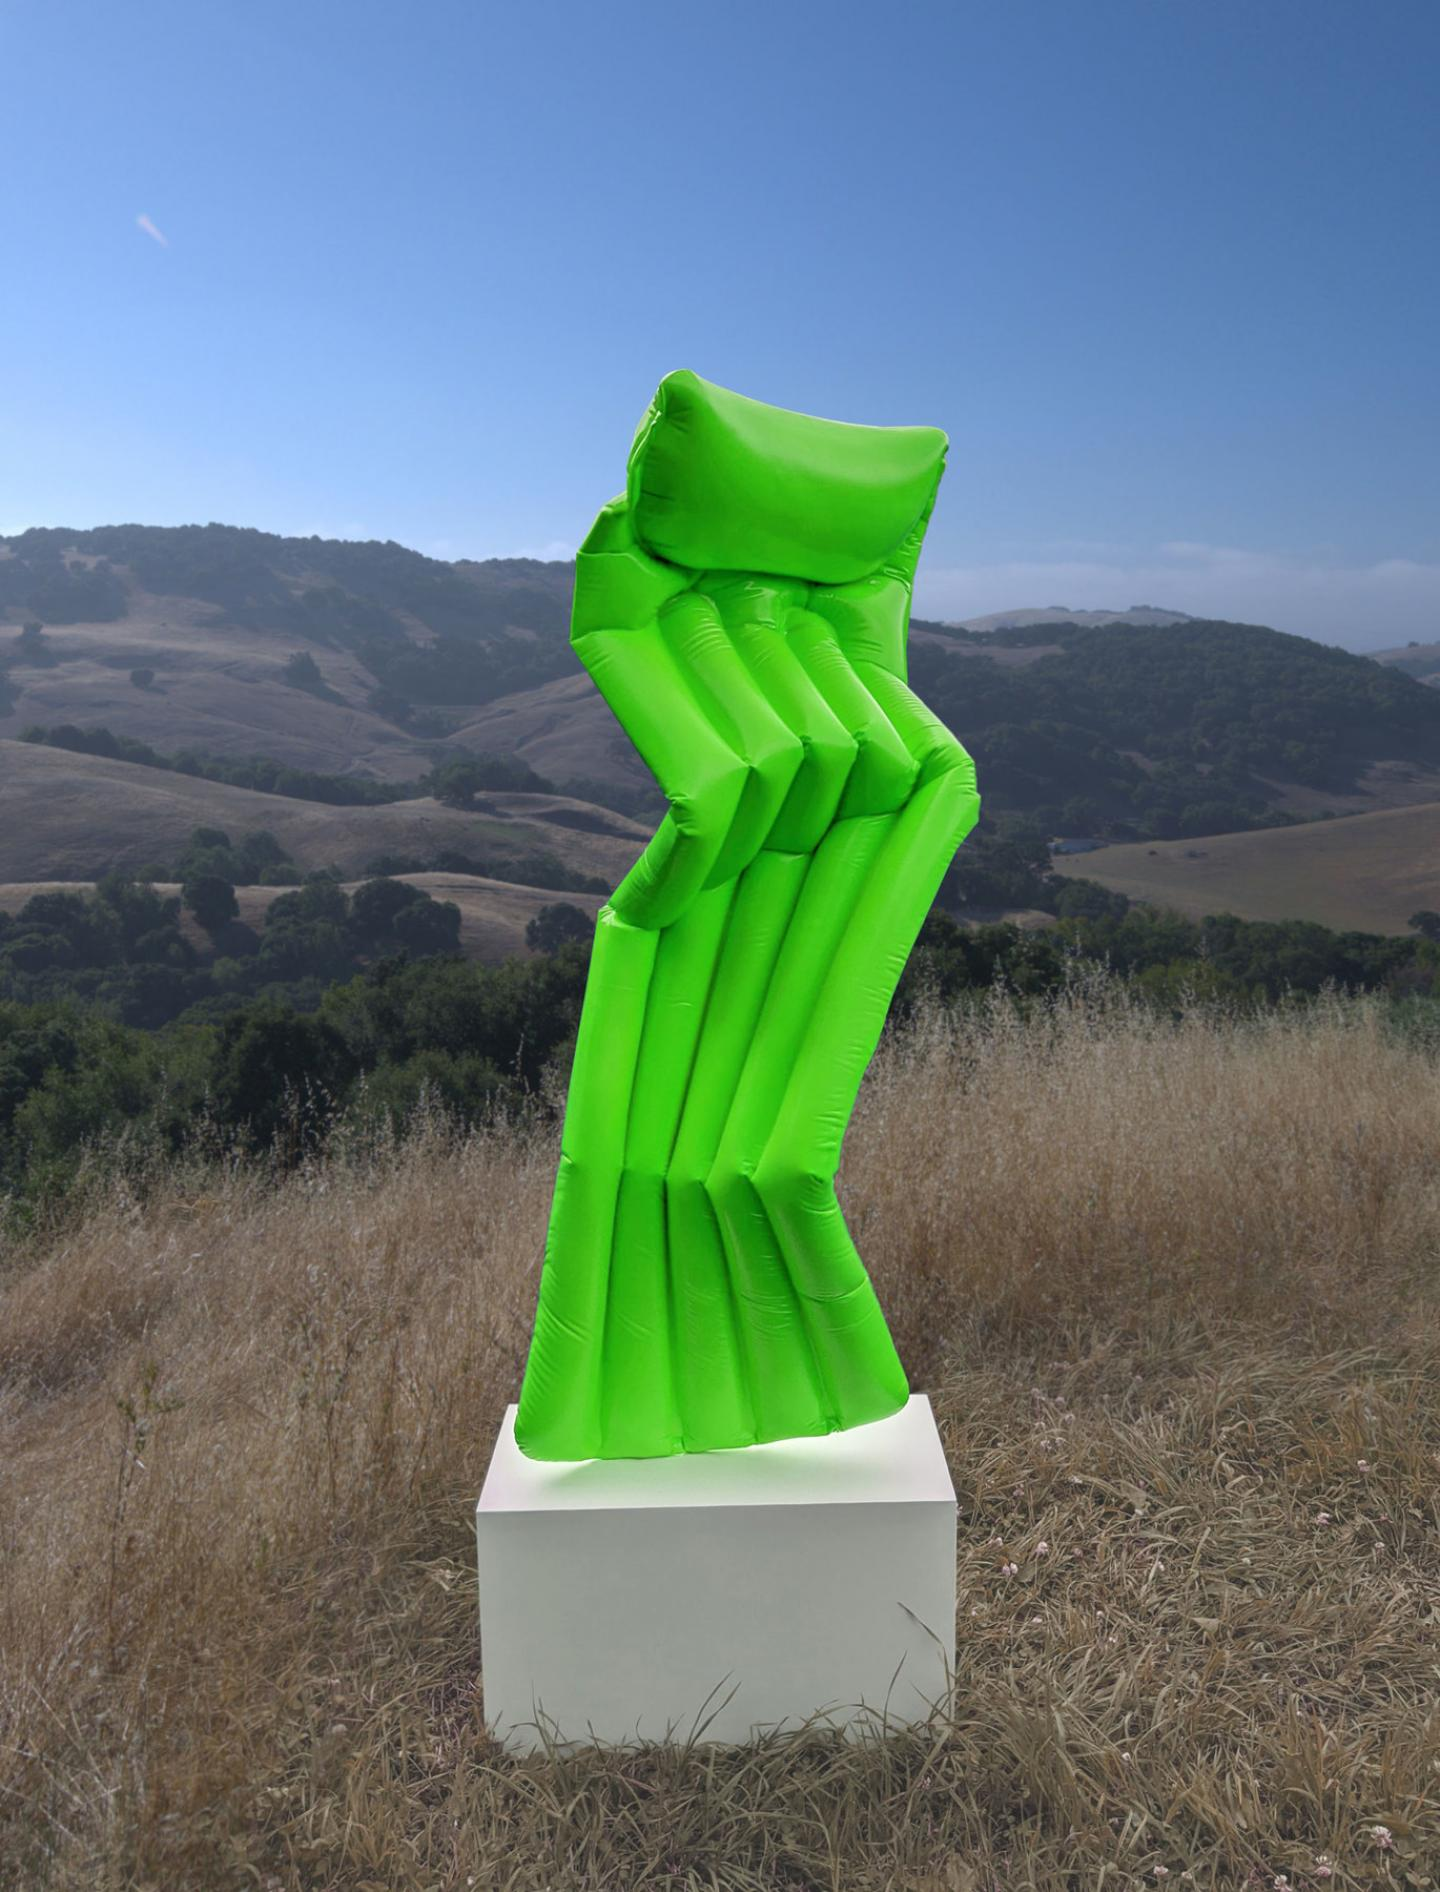 ADAM PARKER SMITH Contrapposto pool float, 2020 Resin, Steel, fiberglas, urethane, powder coated steel base 152 x 53 x 35 cm (59.8 x 20.9 x 13.8 inch) Signed, Estimate: $28,000 - $30,000